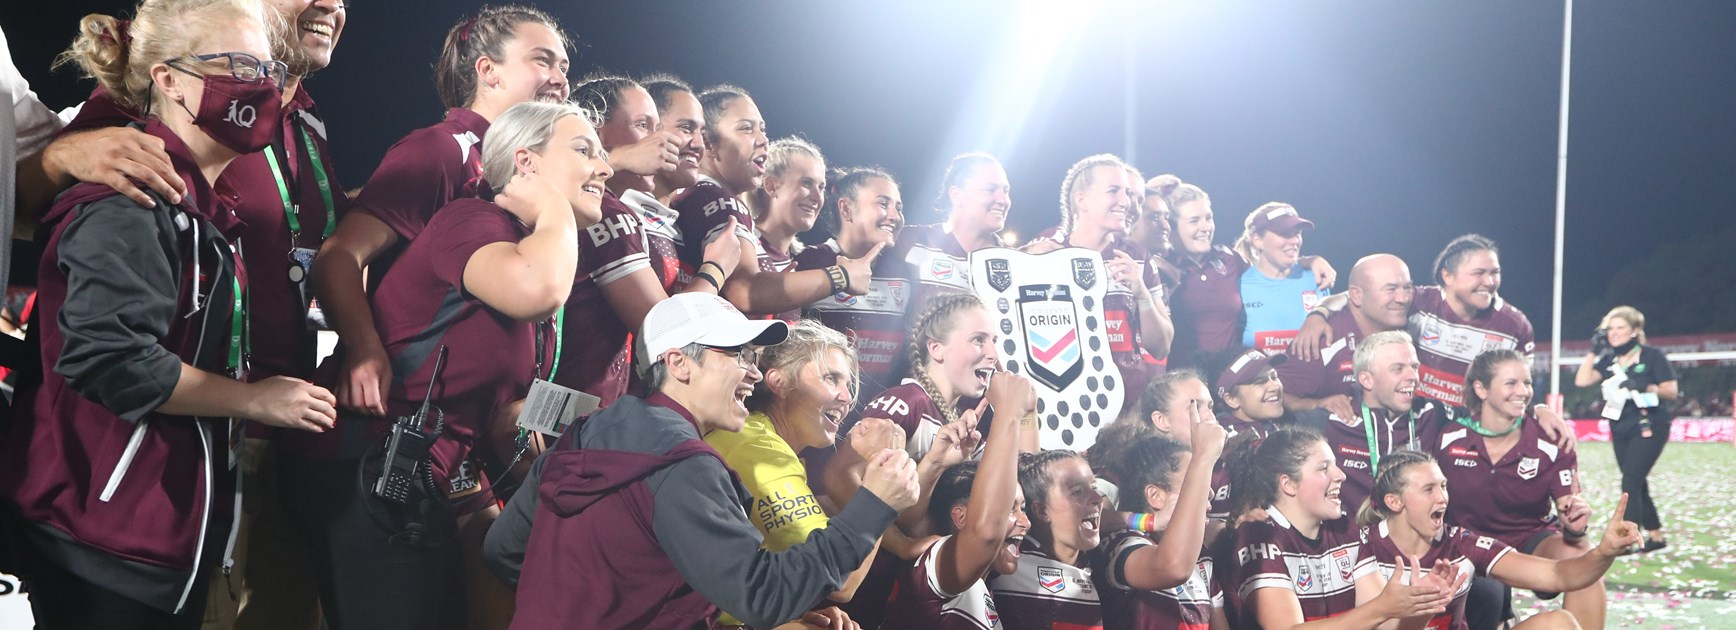 Maroons want another Origin clash on home soil